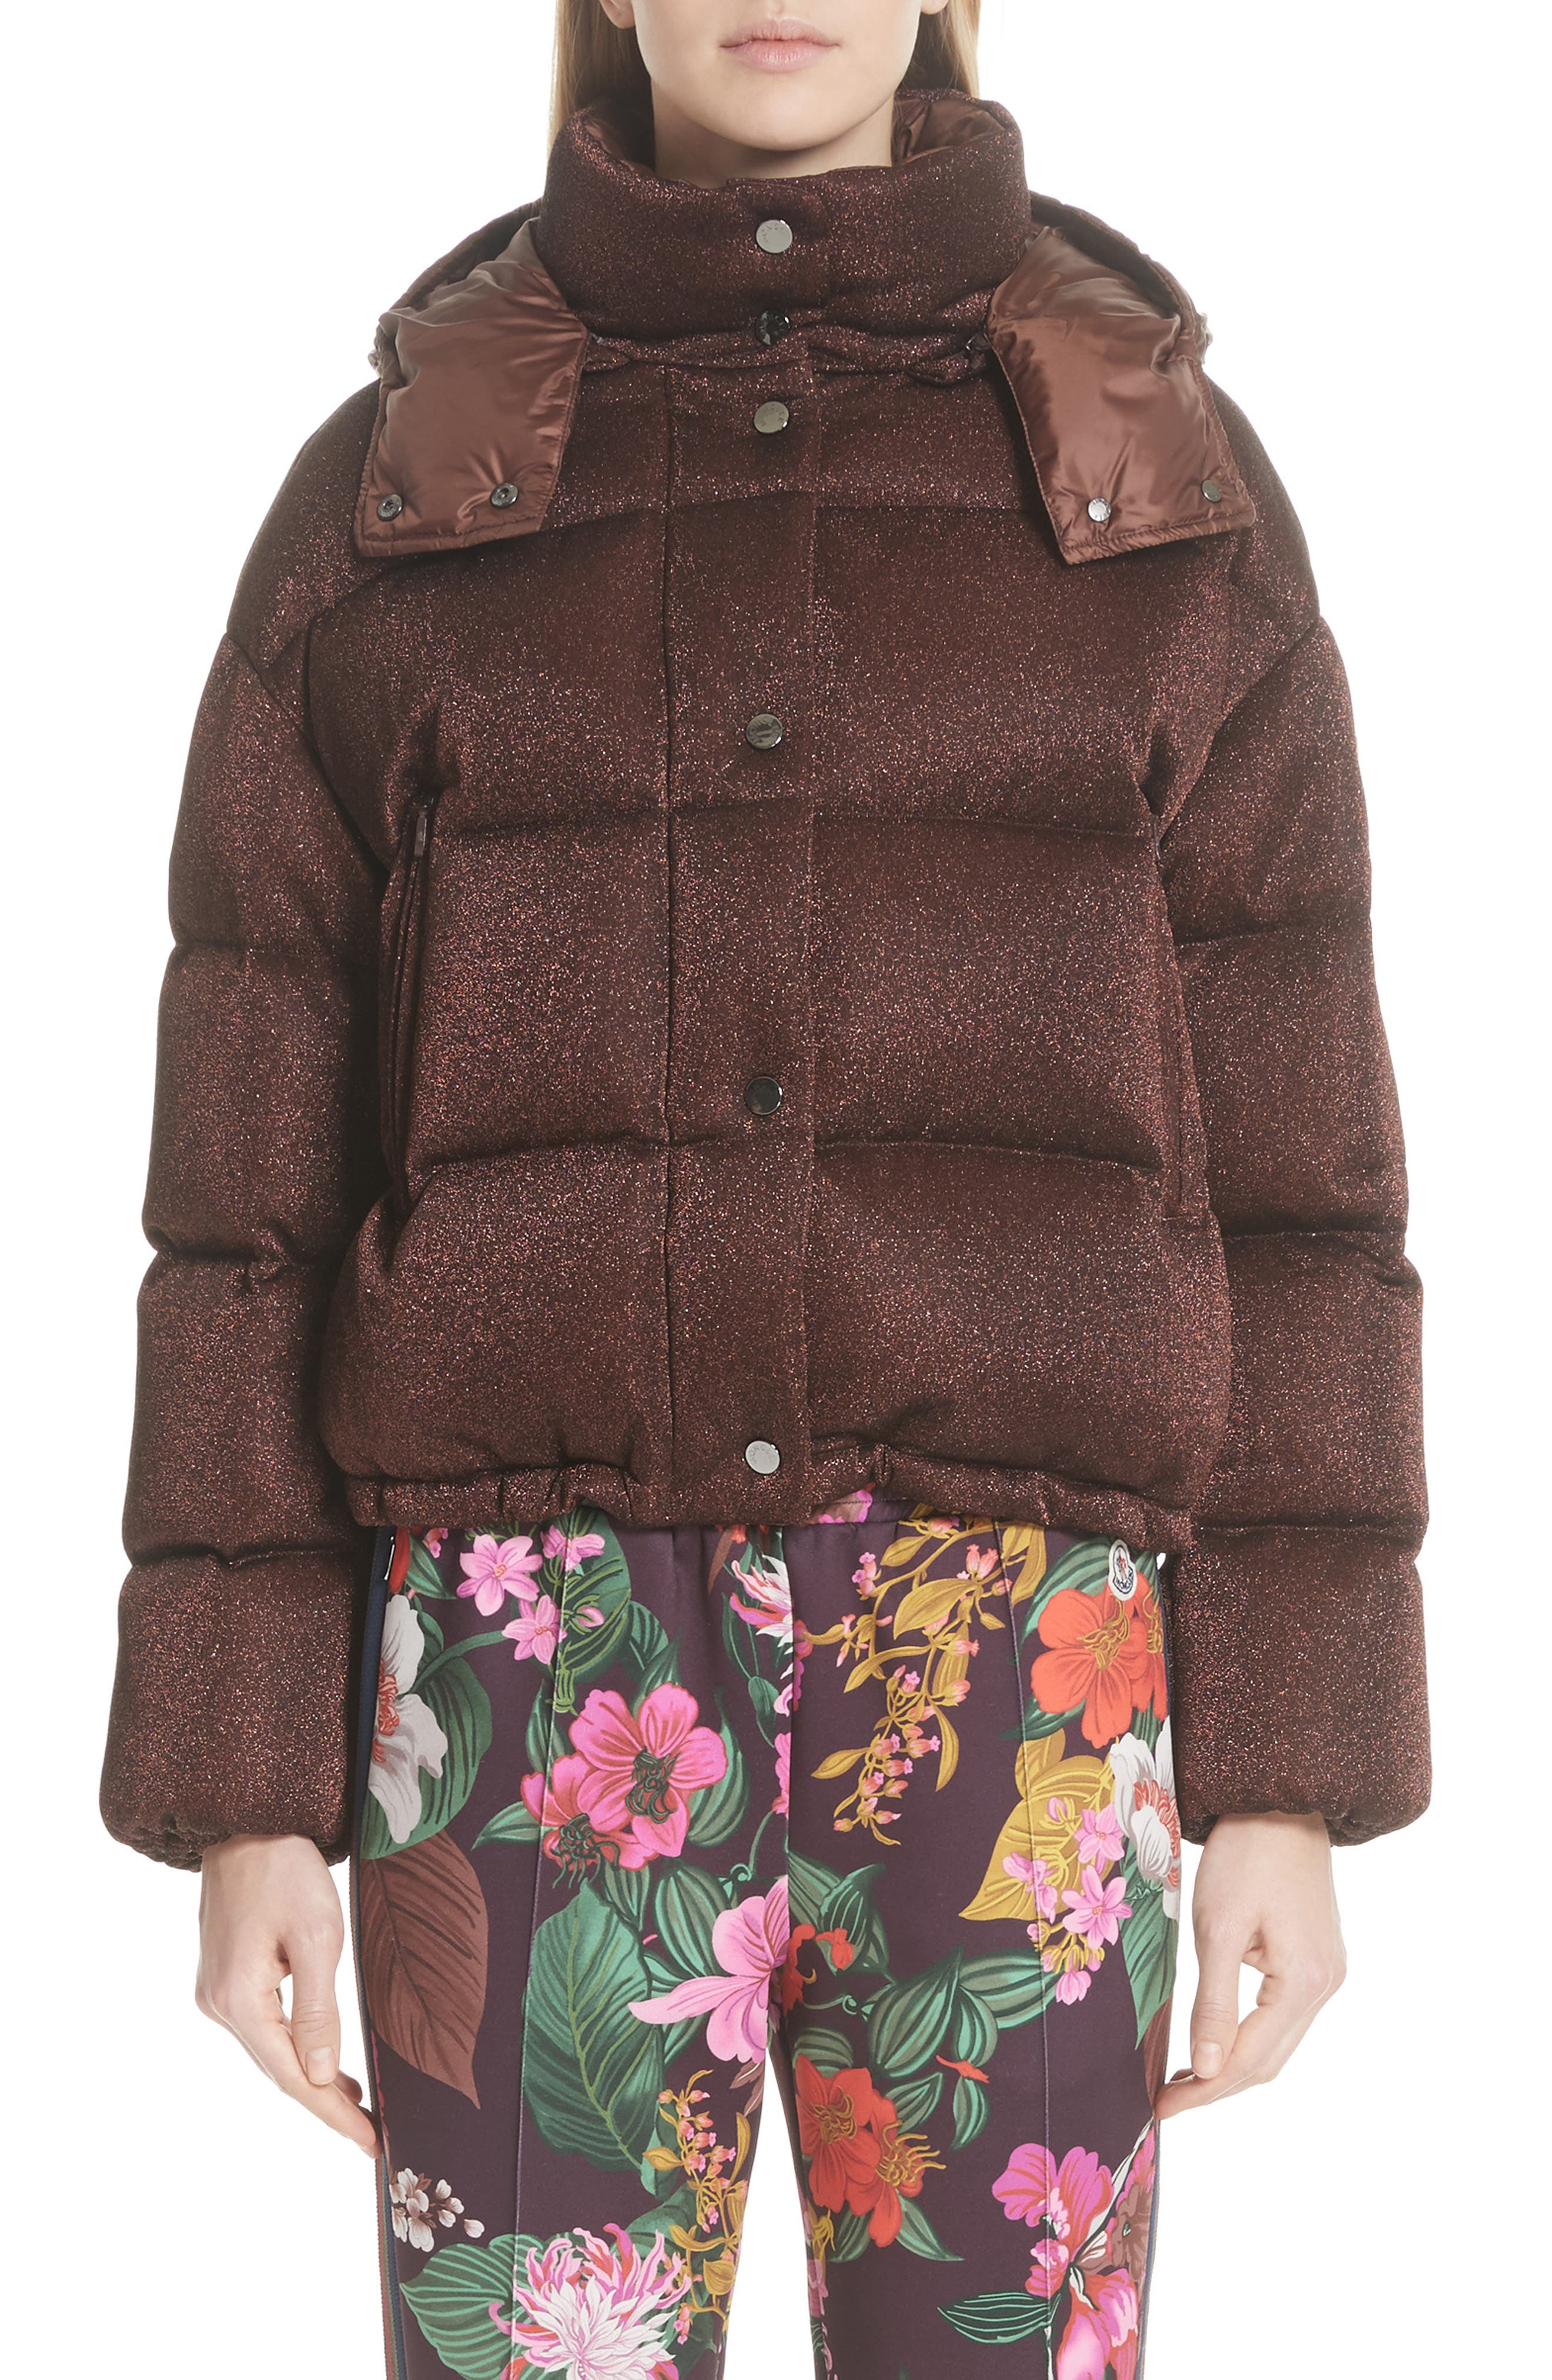 MONCLER, Caille Metallic Quilted Down Jacket, Main thumbnail 1, color, 224